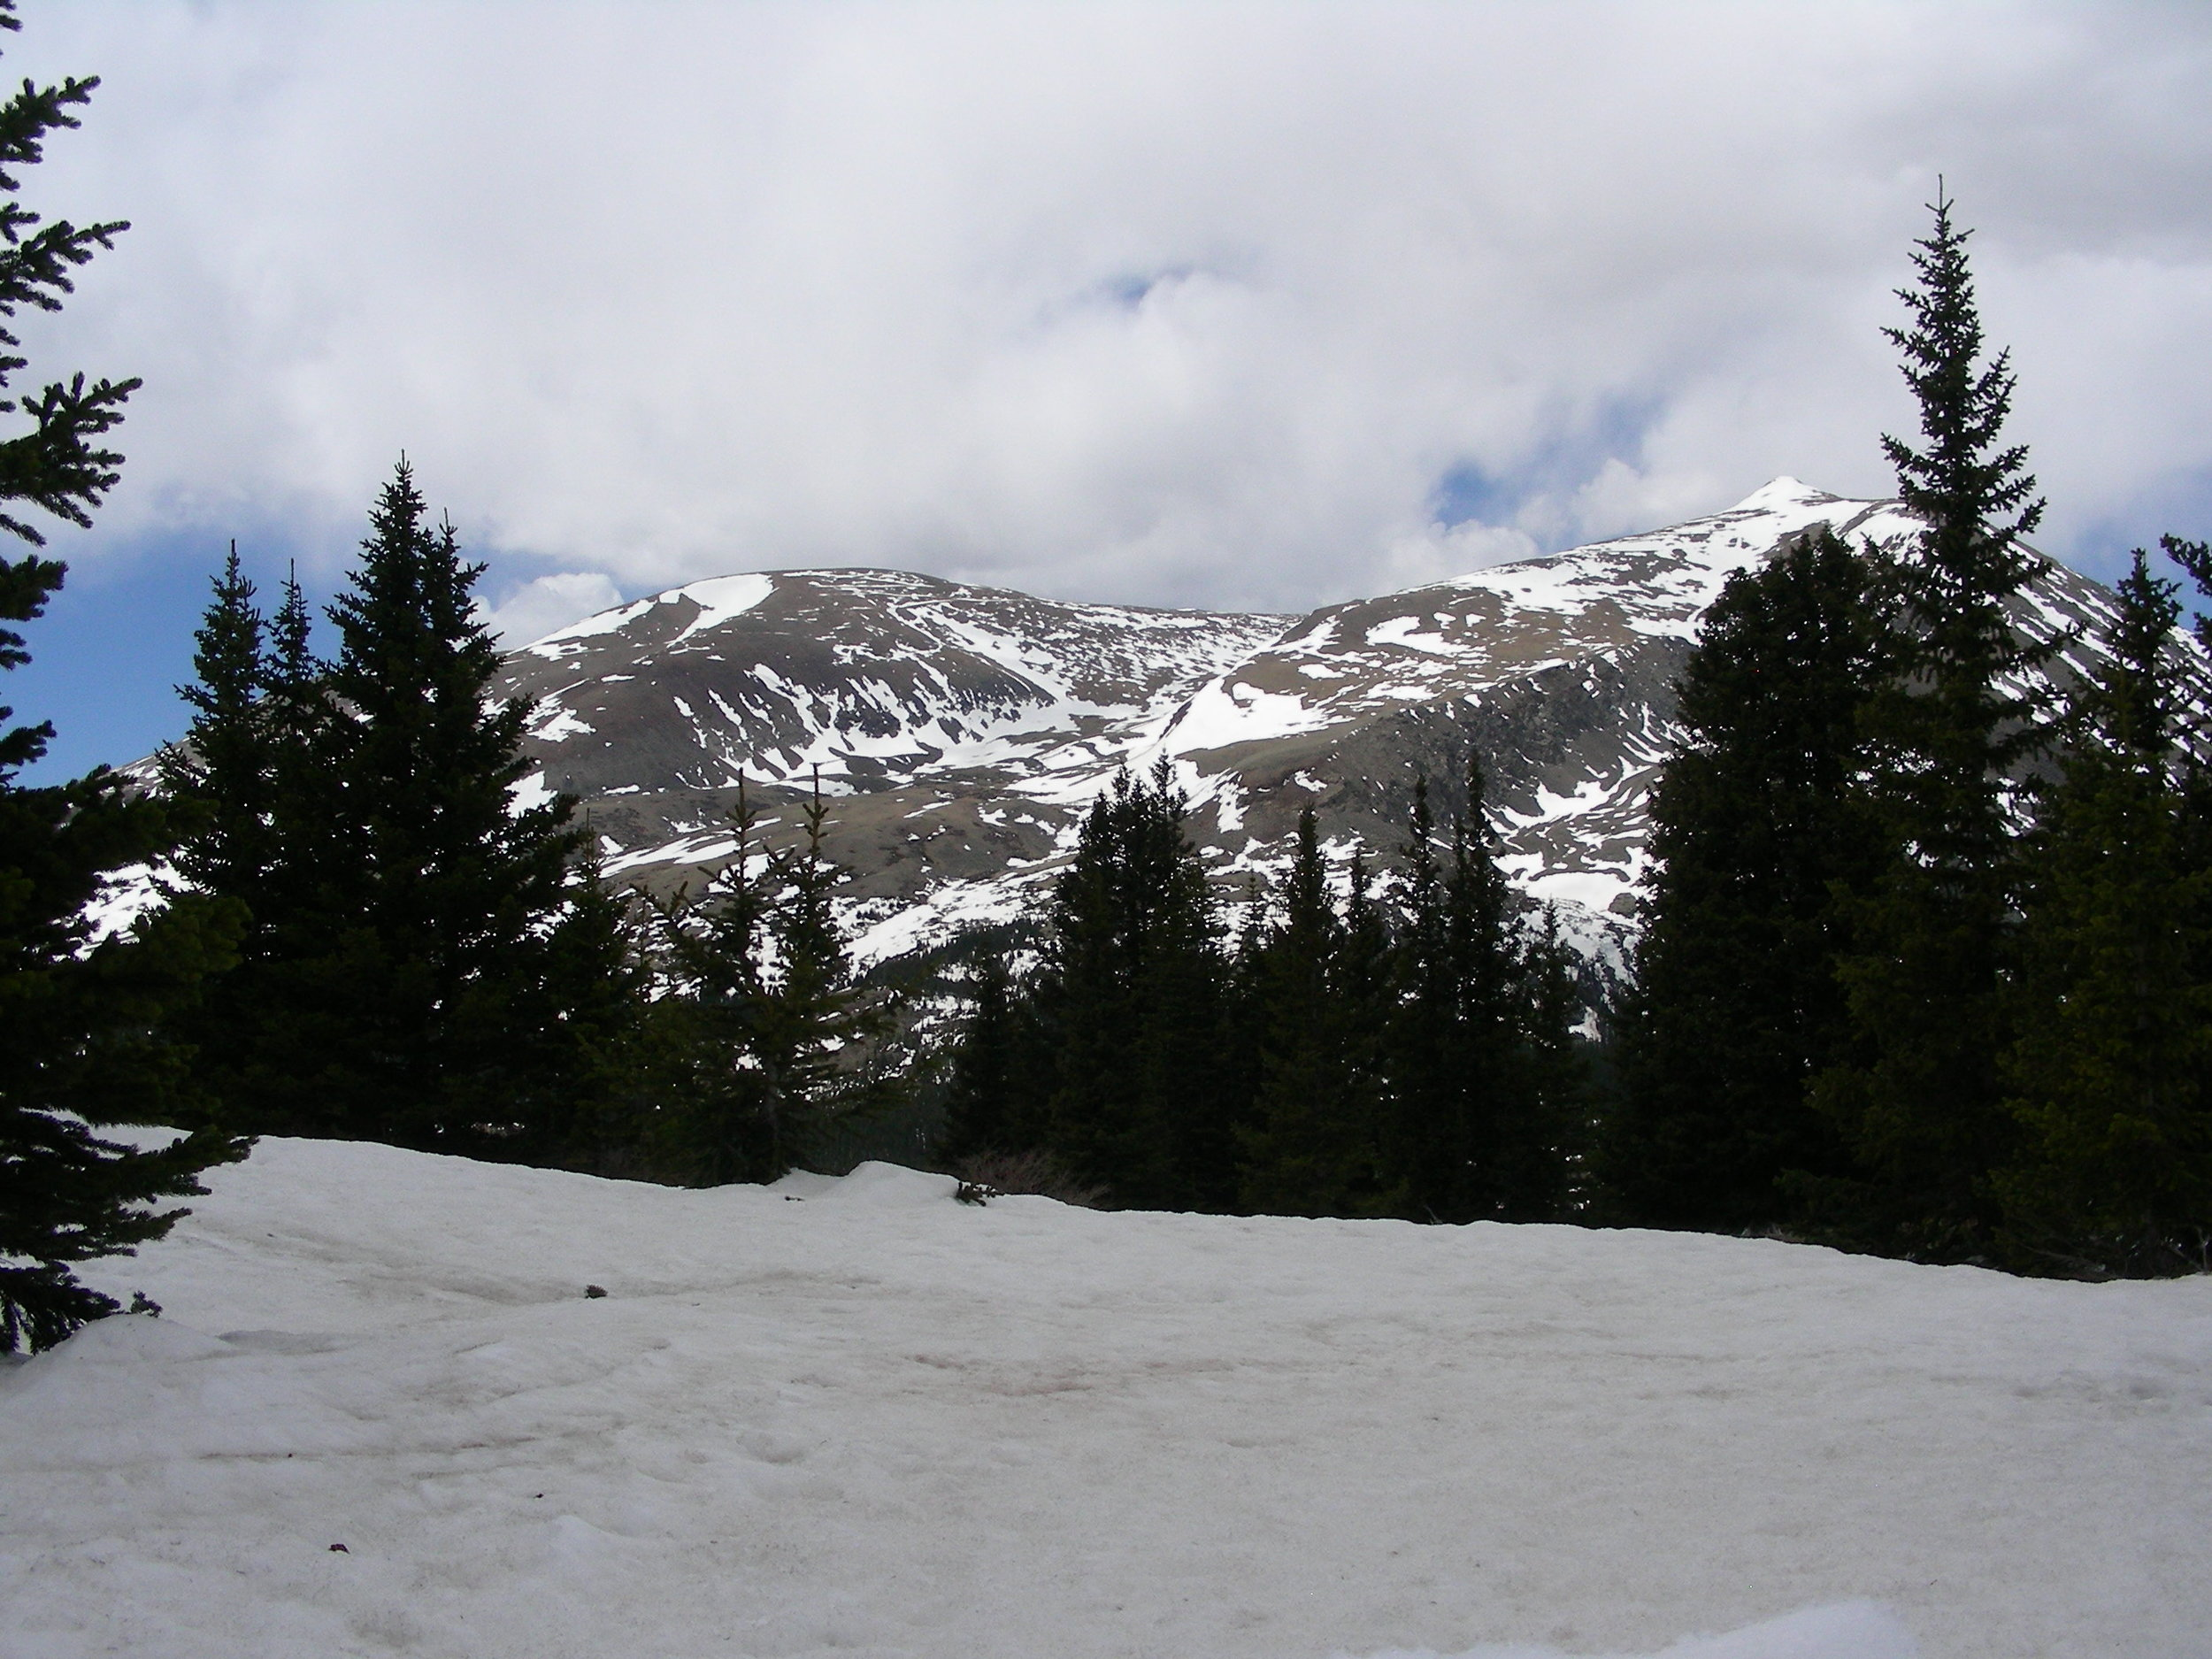 Hoosier Pass.  Where there is snow at higher elevations, dust is easily visible in depositional areas.